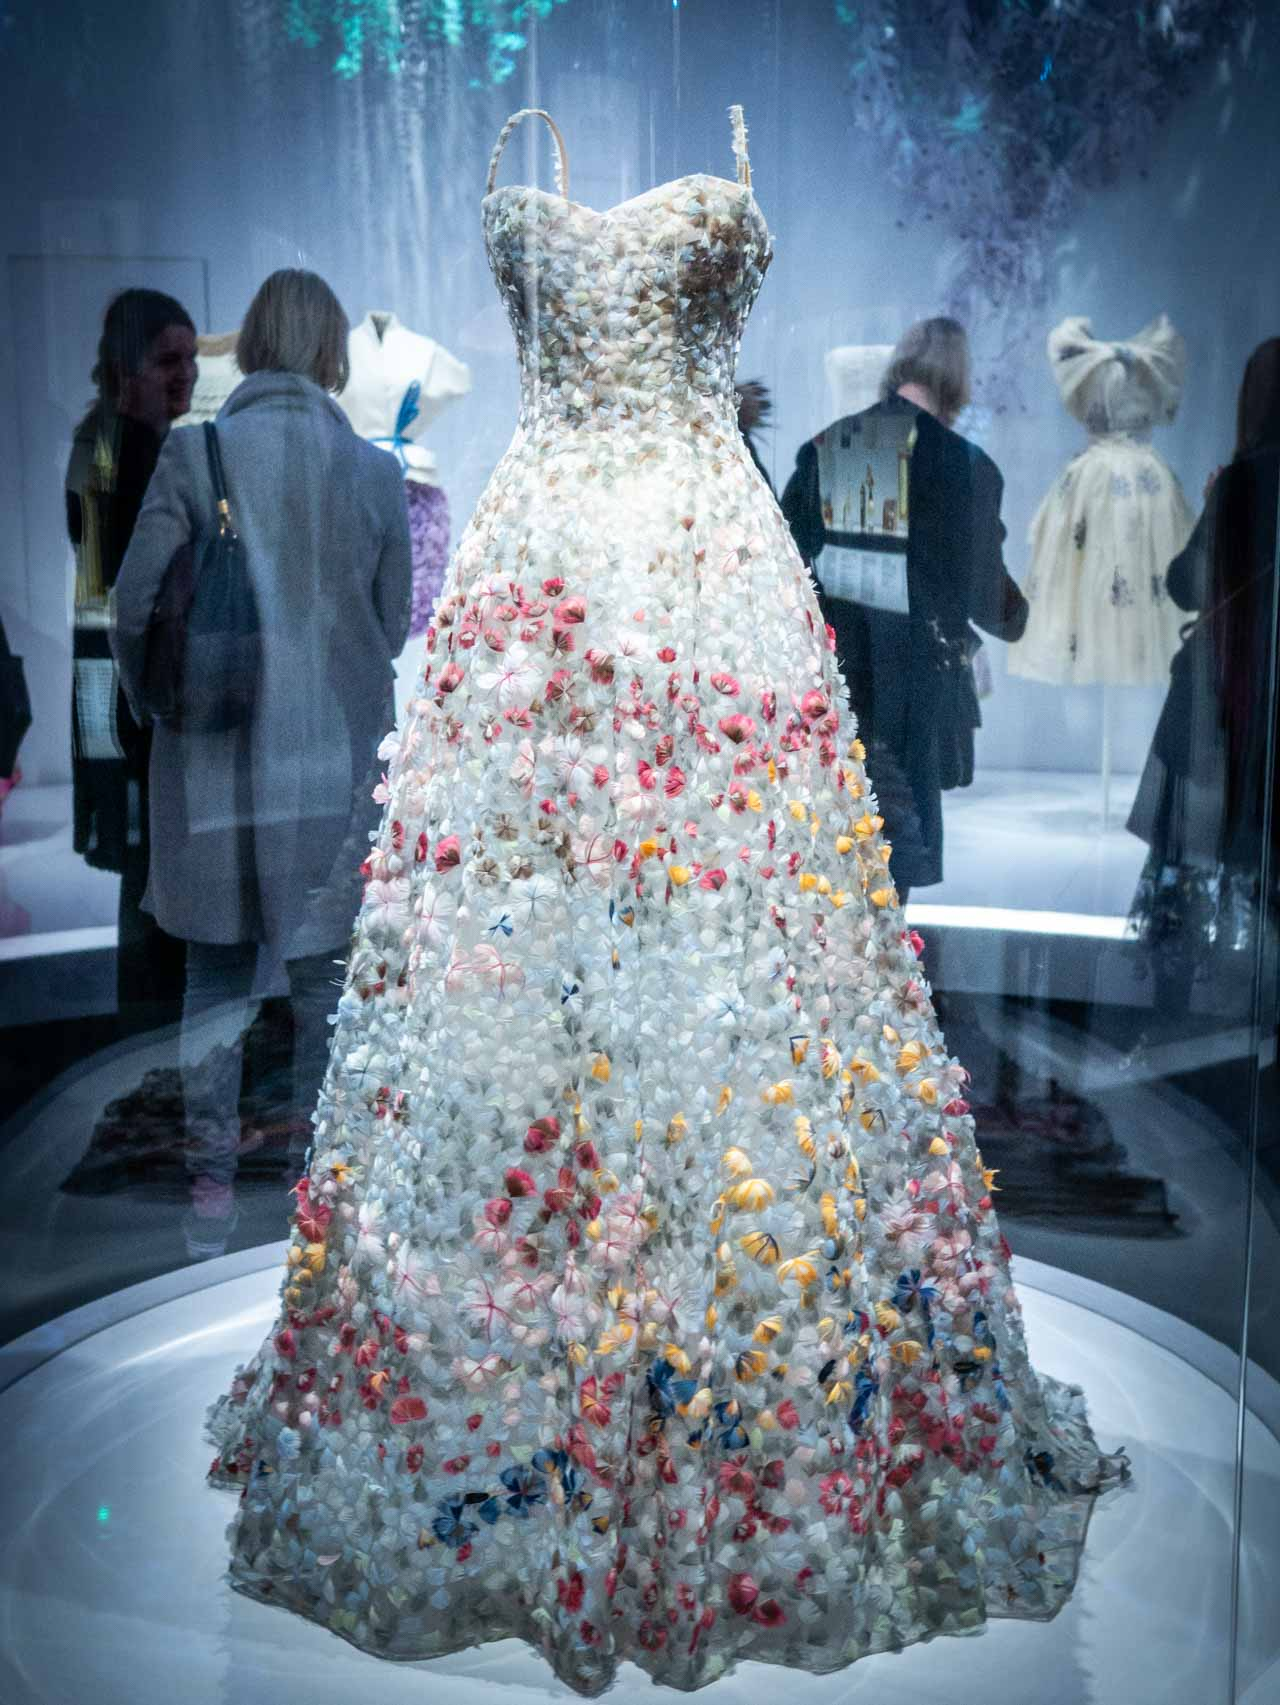 Jardin Fleuri Dress 'Garden in Bloom' designed by Maria Grazia Chiuri for Christian Dior, Haute Couture, Spring-Summer 2017. Taken at the V&A exhibition © The Cutting Class, 2019.